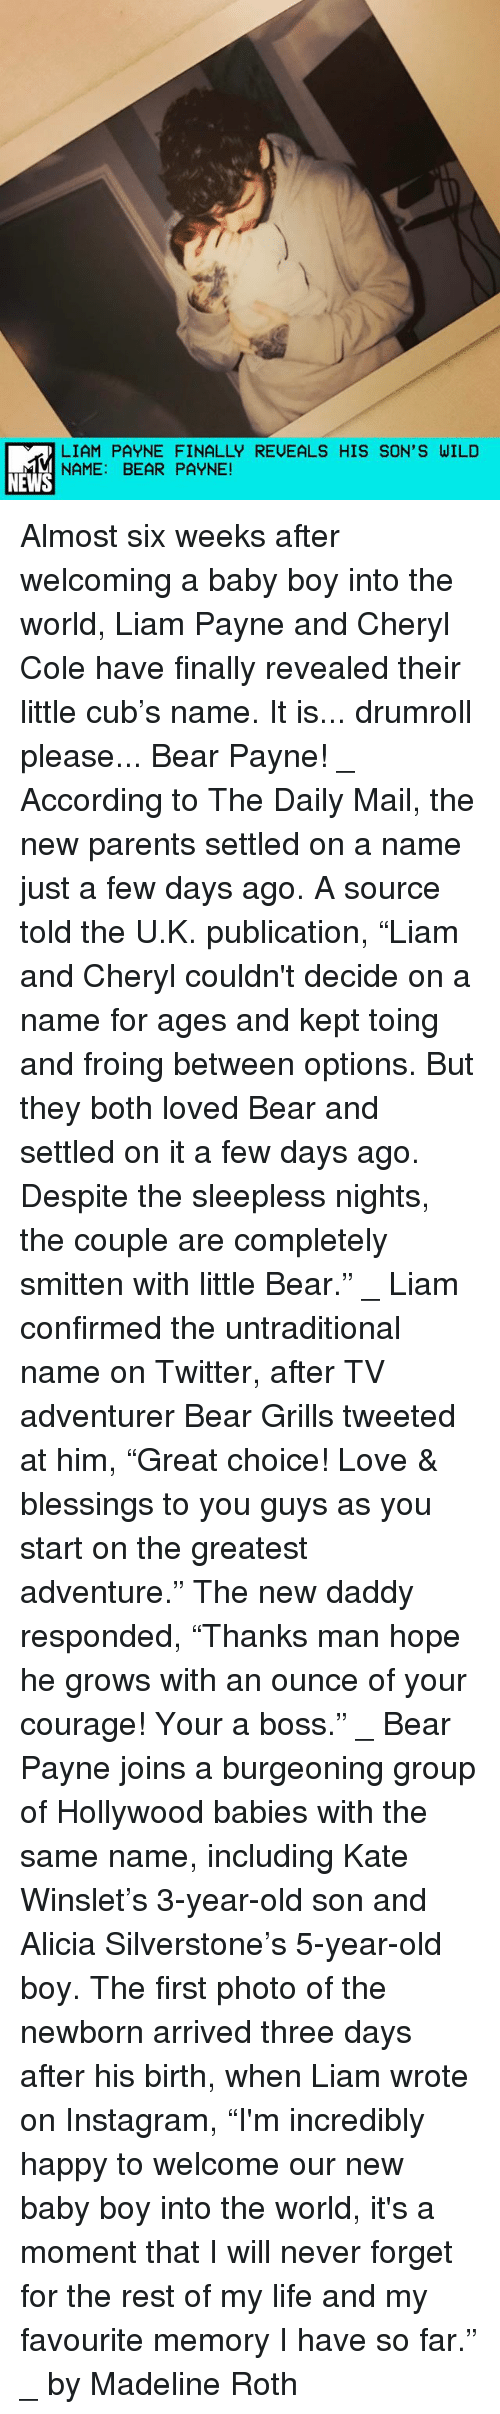 """grills: LIAM PAYNE FINALLY REUEALS HIS SON' S WILD  NAME: BEAR PAYNE!  NEWS Almost six weeks after welcoming a baby boy into the world, Liam Payne and Cheryl Cole have finally revealed their little cub's name. It is... drumroll please... Bear Payne! _ According to The Daily Mail, the new parents settled on a name just a few days ago. A source told the U.K. publication, """"Liam and Cheryl couldn't decide on a name for ages and kept toing and froing between options. But they both loved Bear and settled on it a few days ago. Despite the sleepless nights, the couple are completely smitten with little Bear."""" _ Liam confirmed the untraditional name on Twitter, after TV adventurer Bear Grills tweeted at him, """"Great choice! Love & blessings to you guys as you start on the greatest adventure."""" The new daddy responded, """"Thanks man hope he grows with an ounce of your courage! Your a boss."""" _ Bear Payne joins a burgeoning group of Hollywood babies with the same name, including Kate Winslet's 3-year-old son and Alicia Silverstone's 5-year-old boy. The first photo of the newborn arrived three days after his birth, when Liam wrote on Instagram, """"I'm incredibly happy to welcome our new baby boy into the world, it's a moment that I will never forget for the rest of my life and my favourite memory I have so far."""" _ by Madeline Roth"""